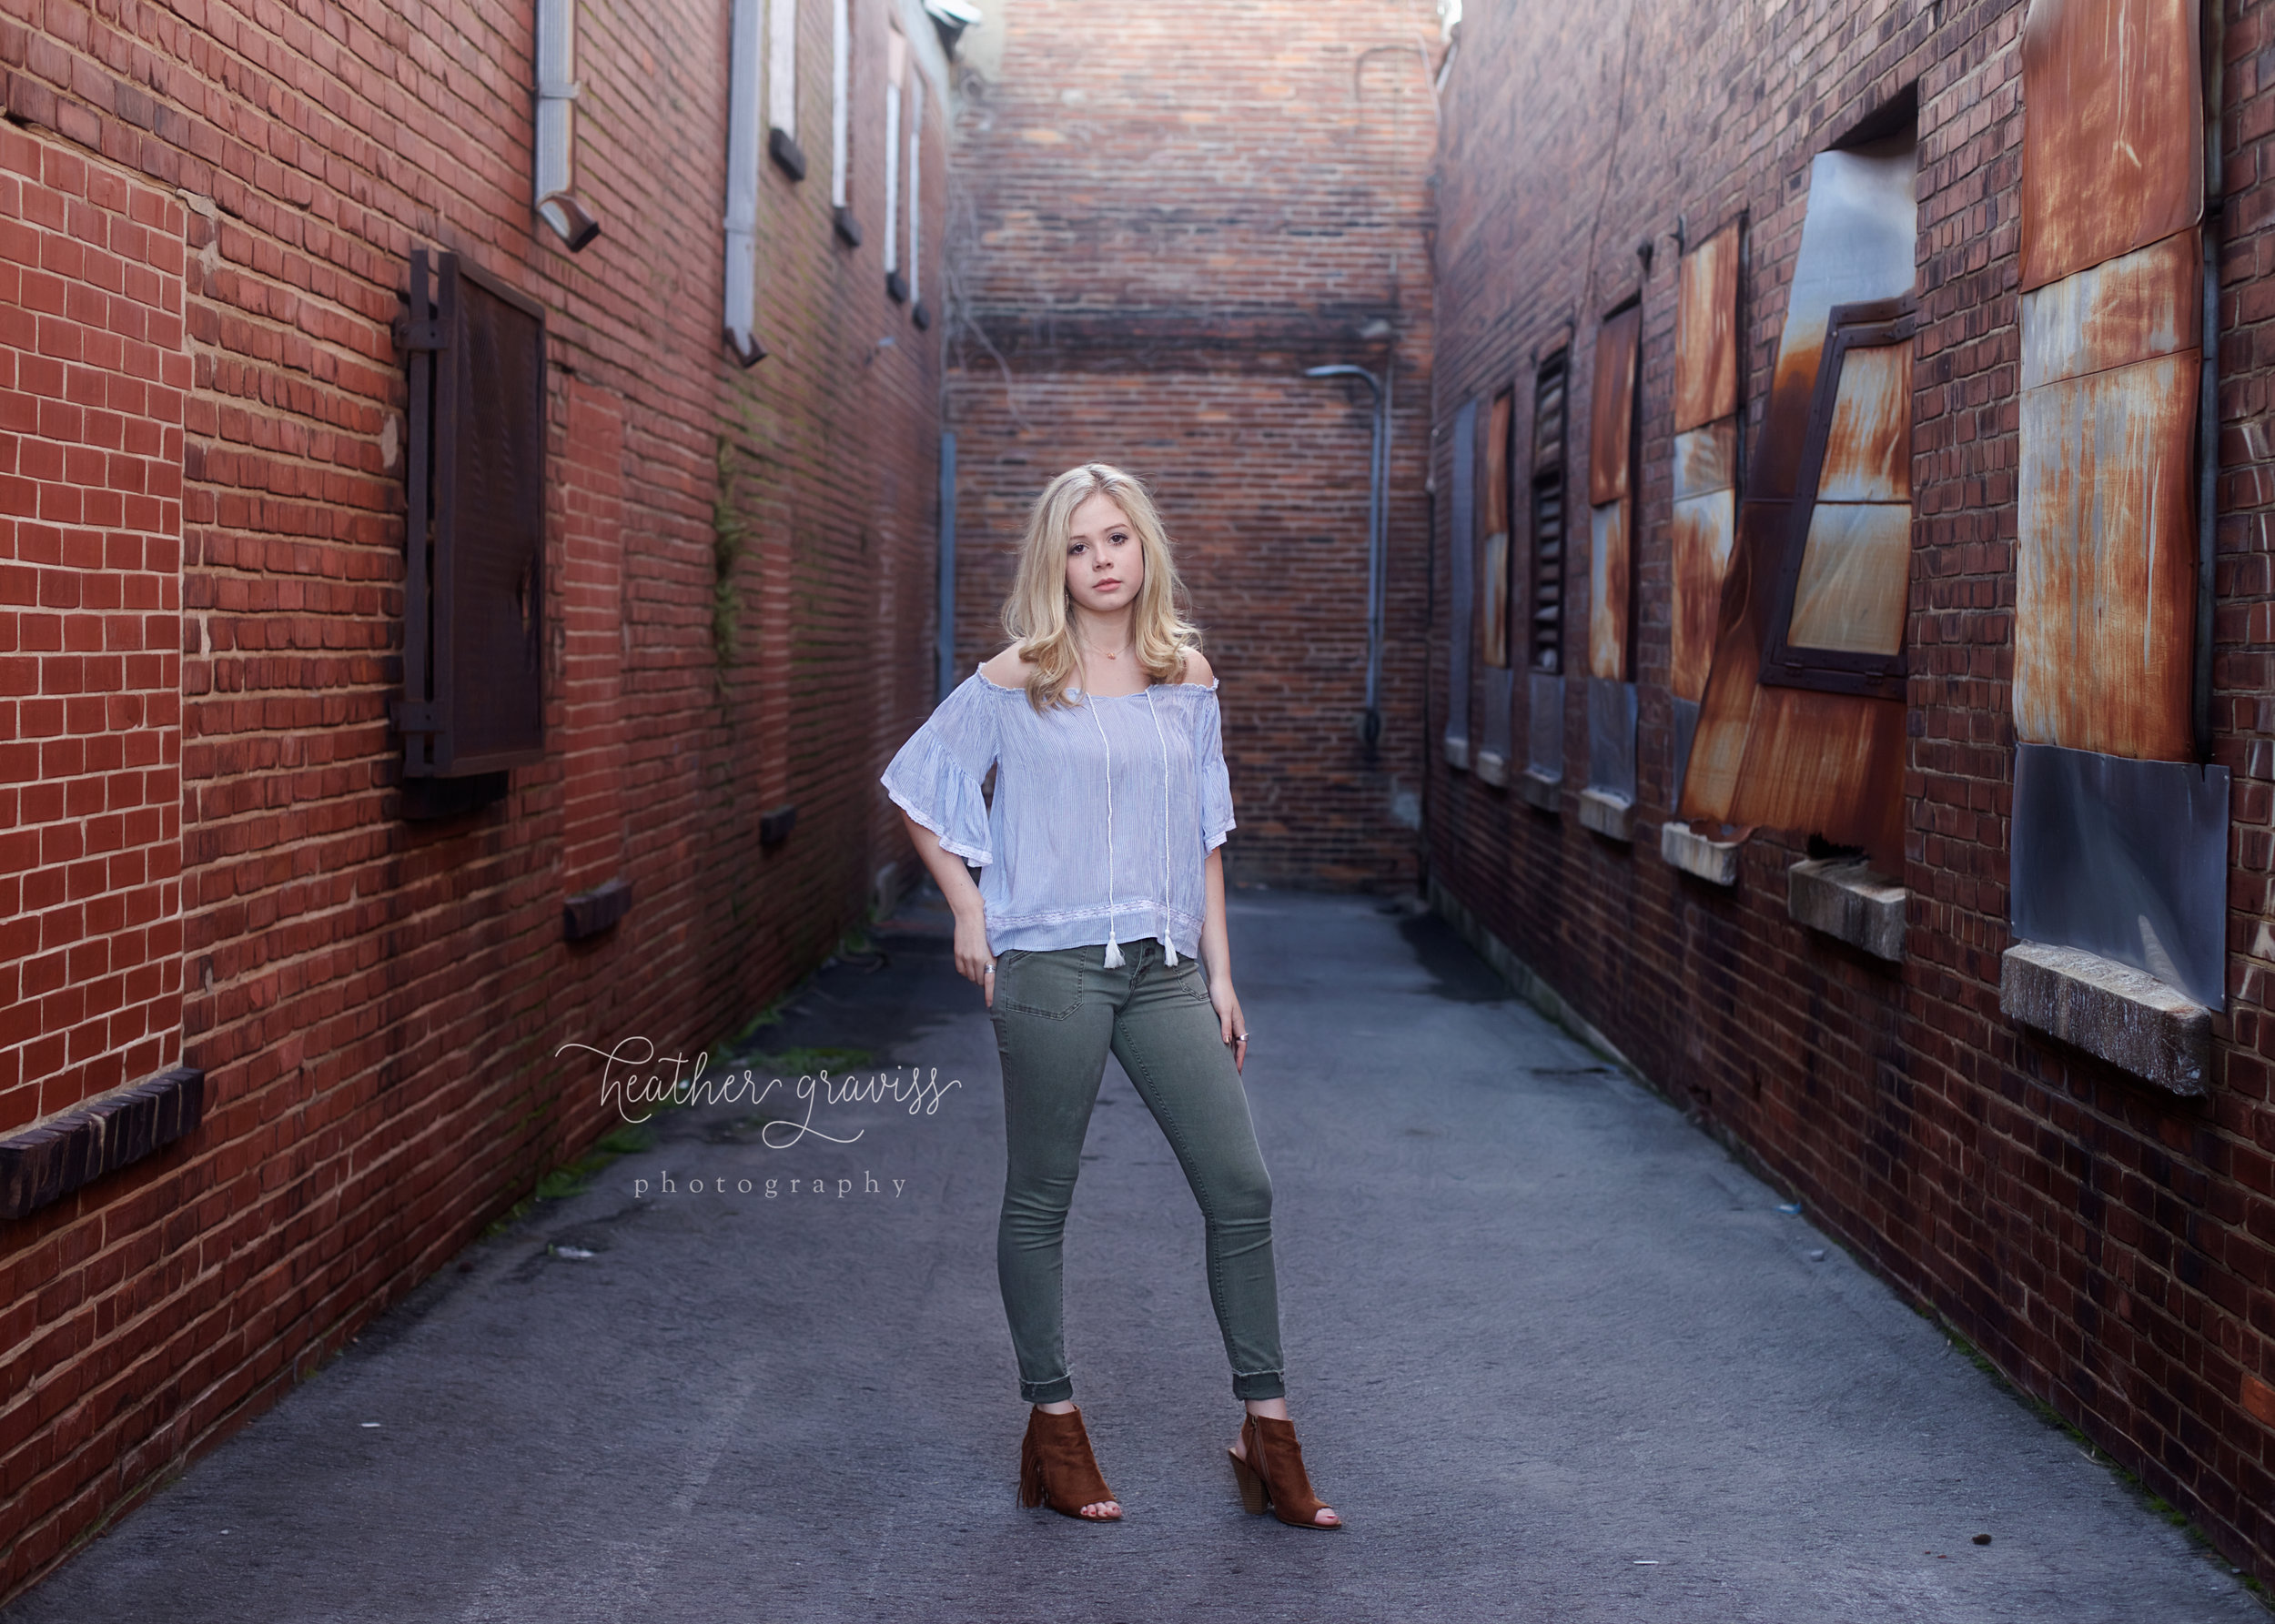 nashville tn senior photography 014.jpg